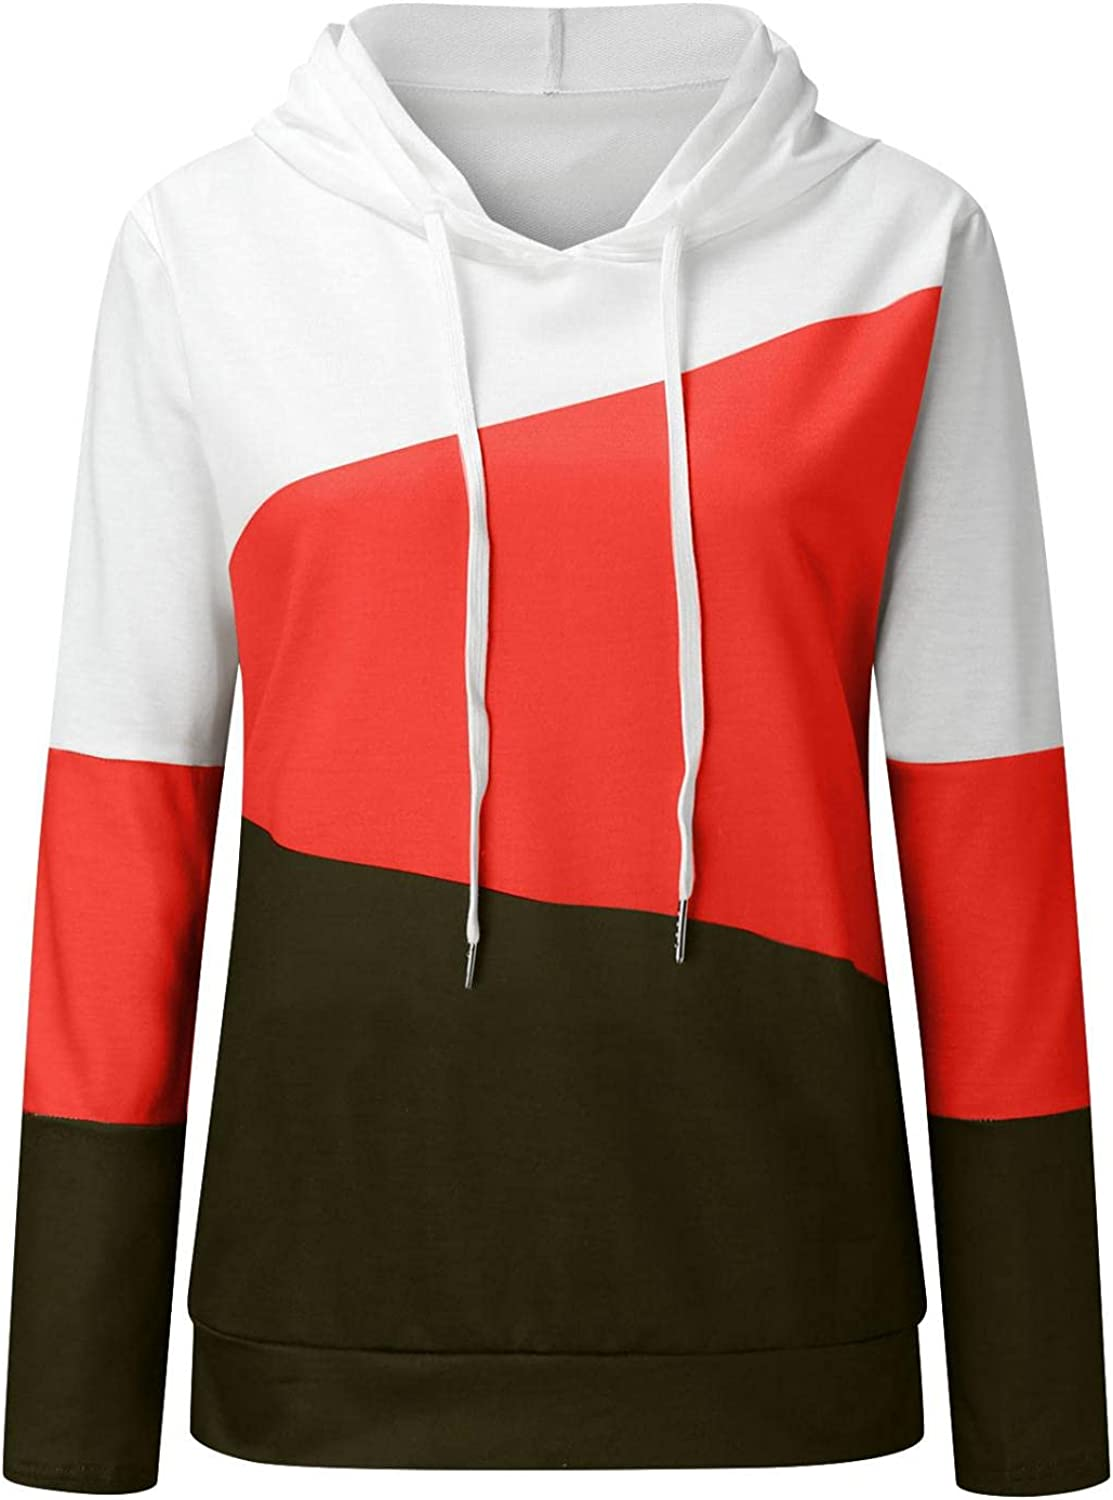 Womens Zip-Up Hoodie Long Sleeve Pachwork Print Lightweight Pullover Sweatshirt Casual Knit Tunic Jacket with Pockets